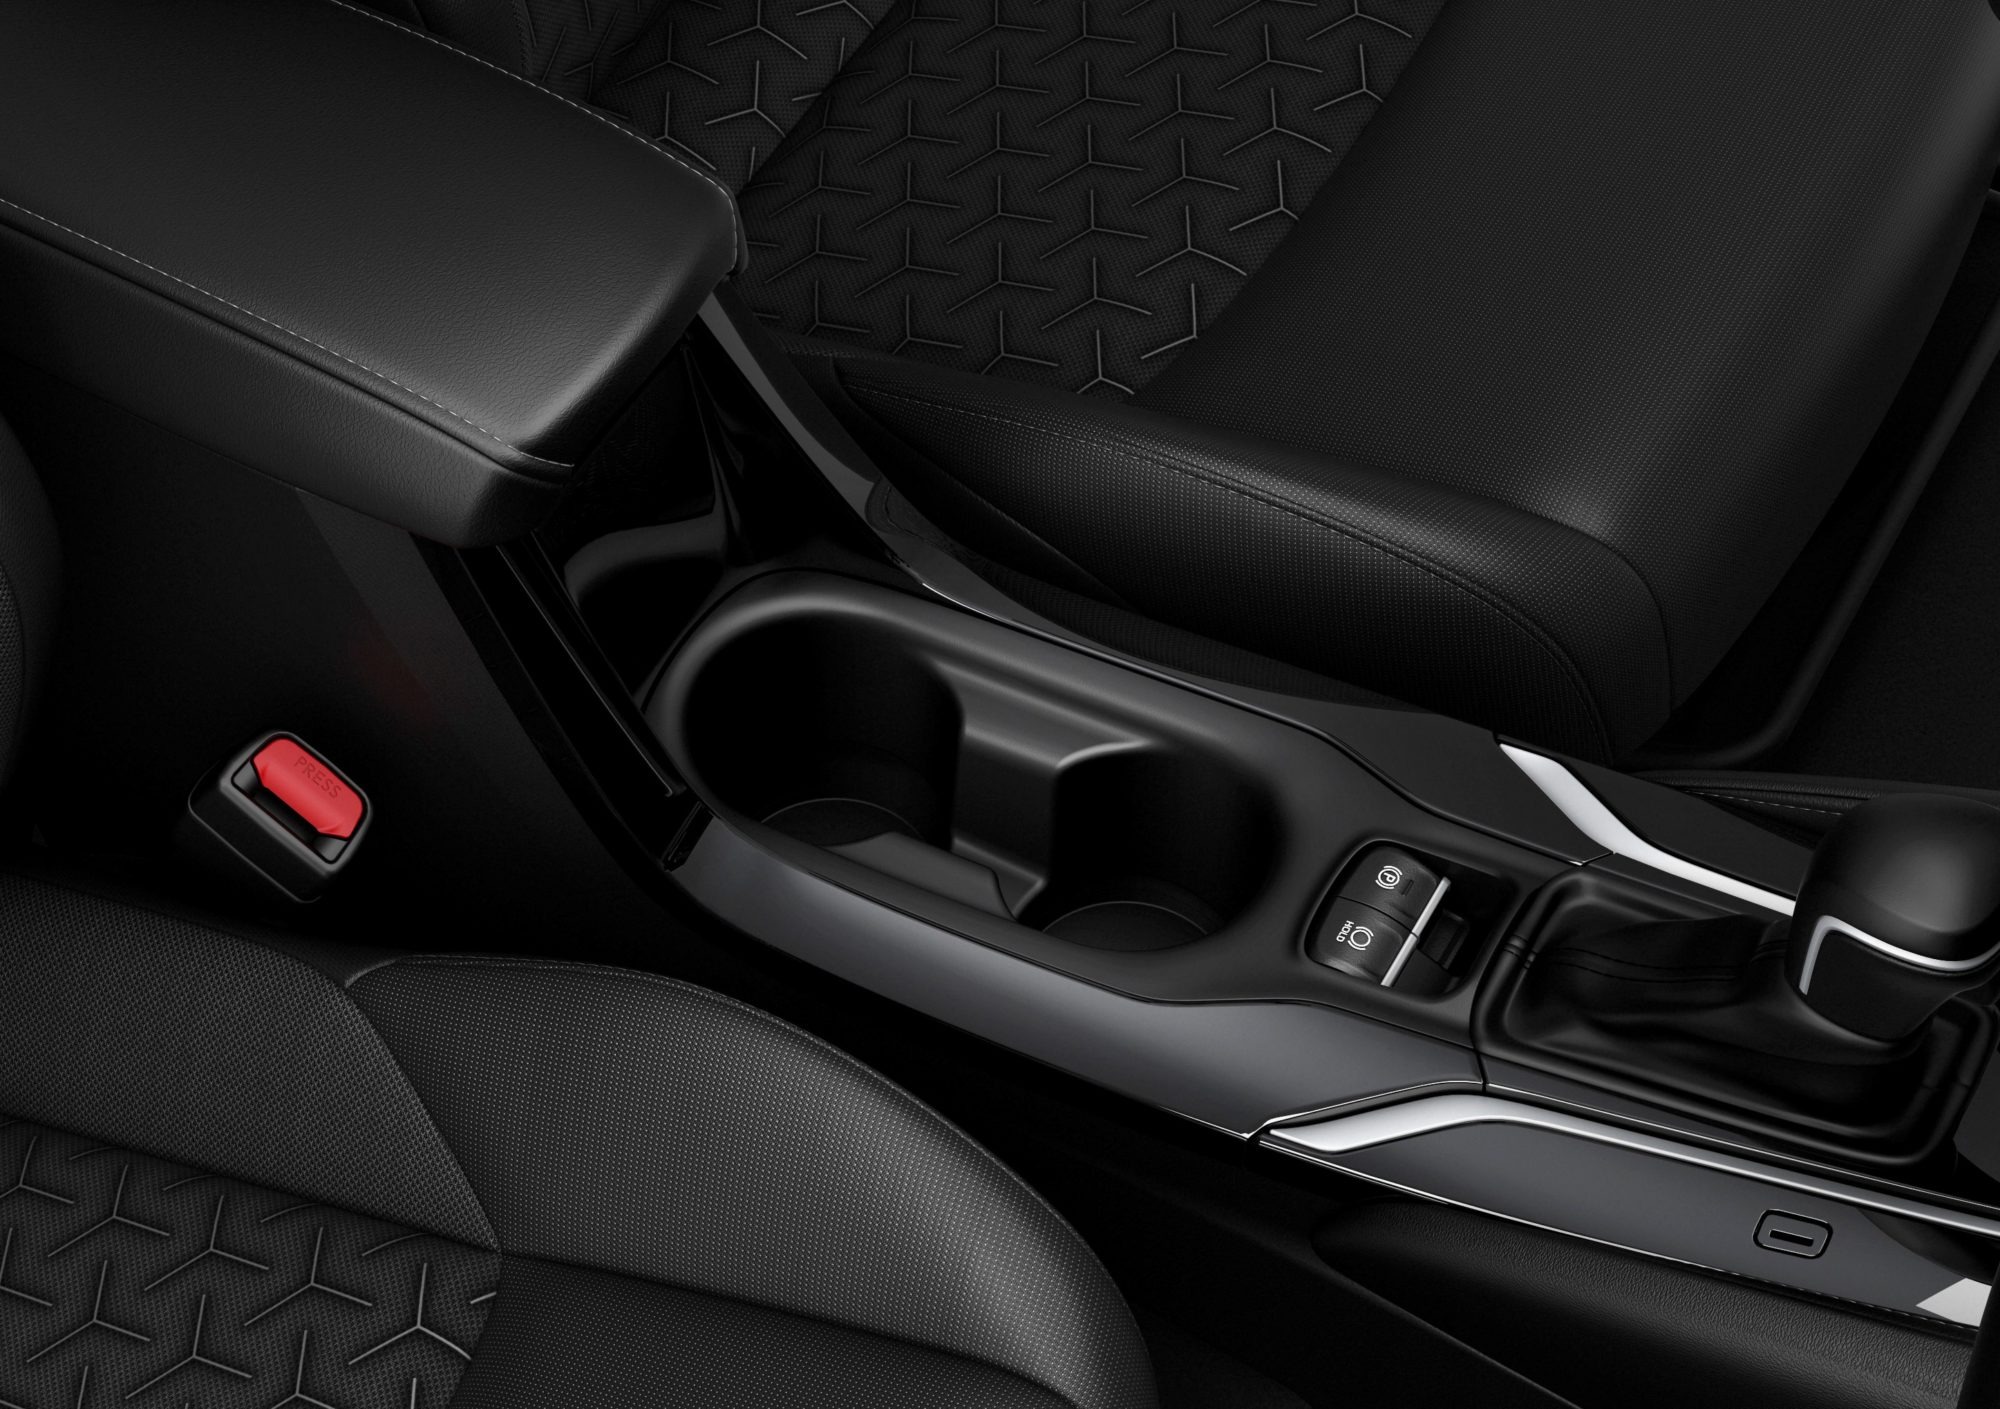 Suzuki Swace 2020 - Front cup holders